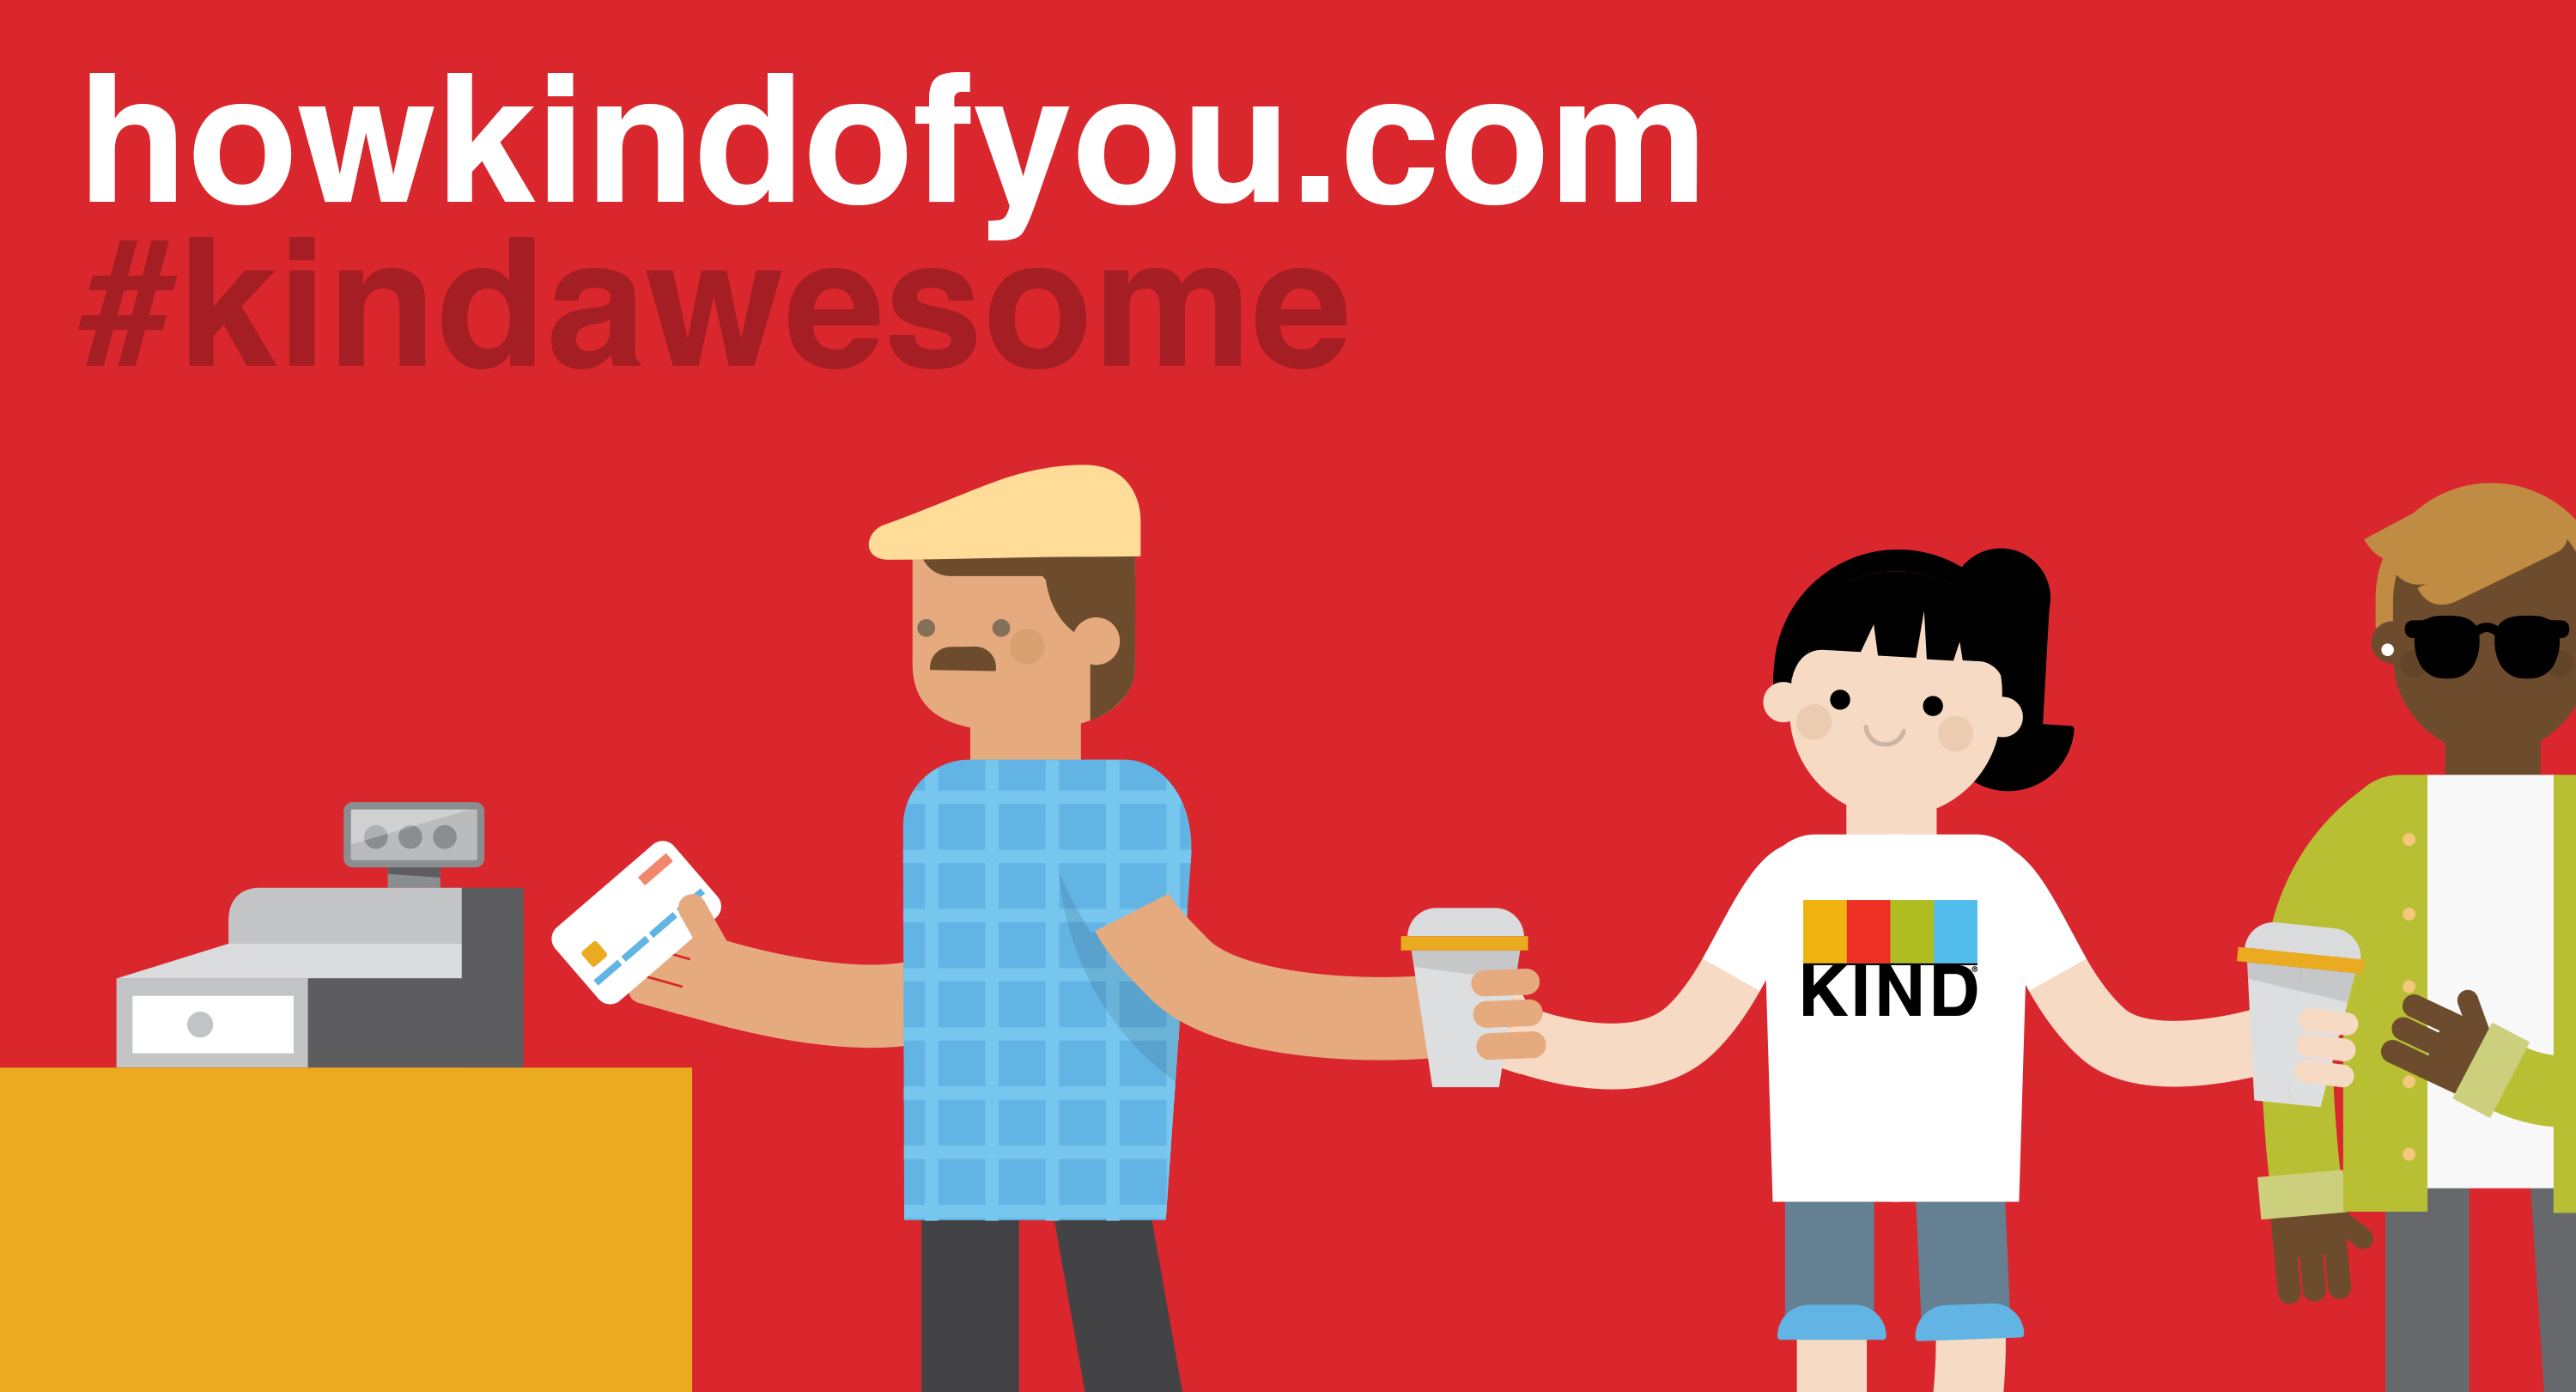 Starting Today: Spot & Celebrate Kindness with #kindawesome